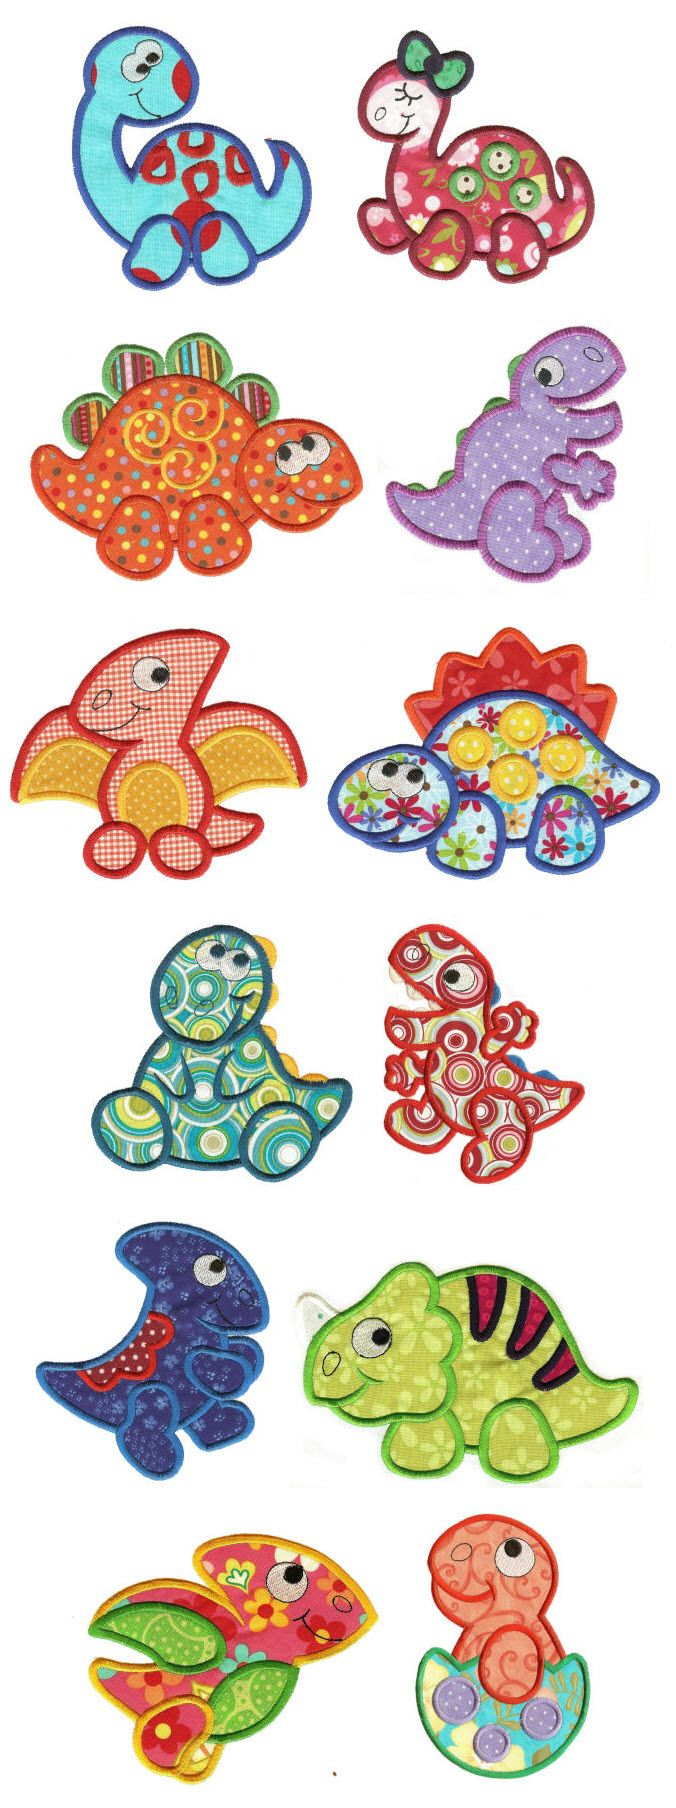 diseños de animalitos  Embroidery | Free Machine Embroidery Designs | Dino Crossing Applique....several free patterns for donloding and also scripture verses...very cool